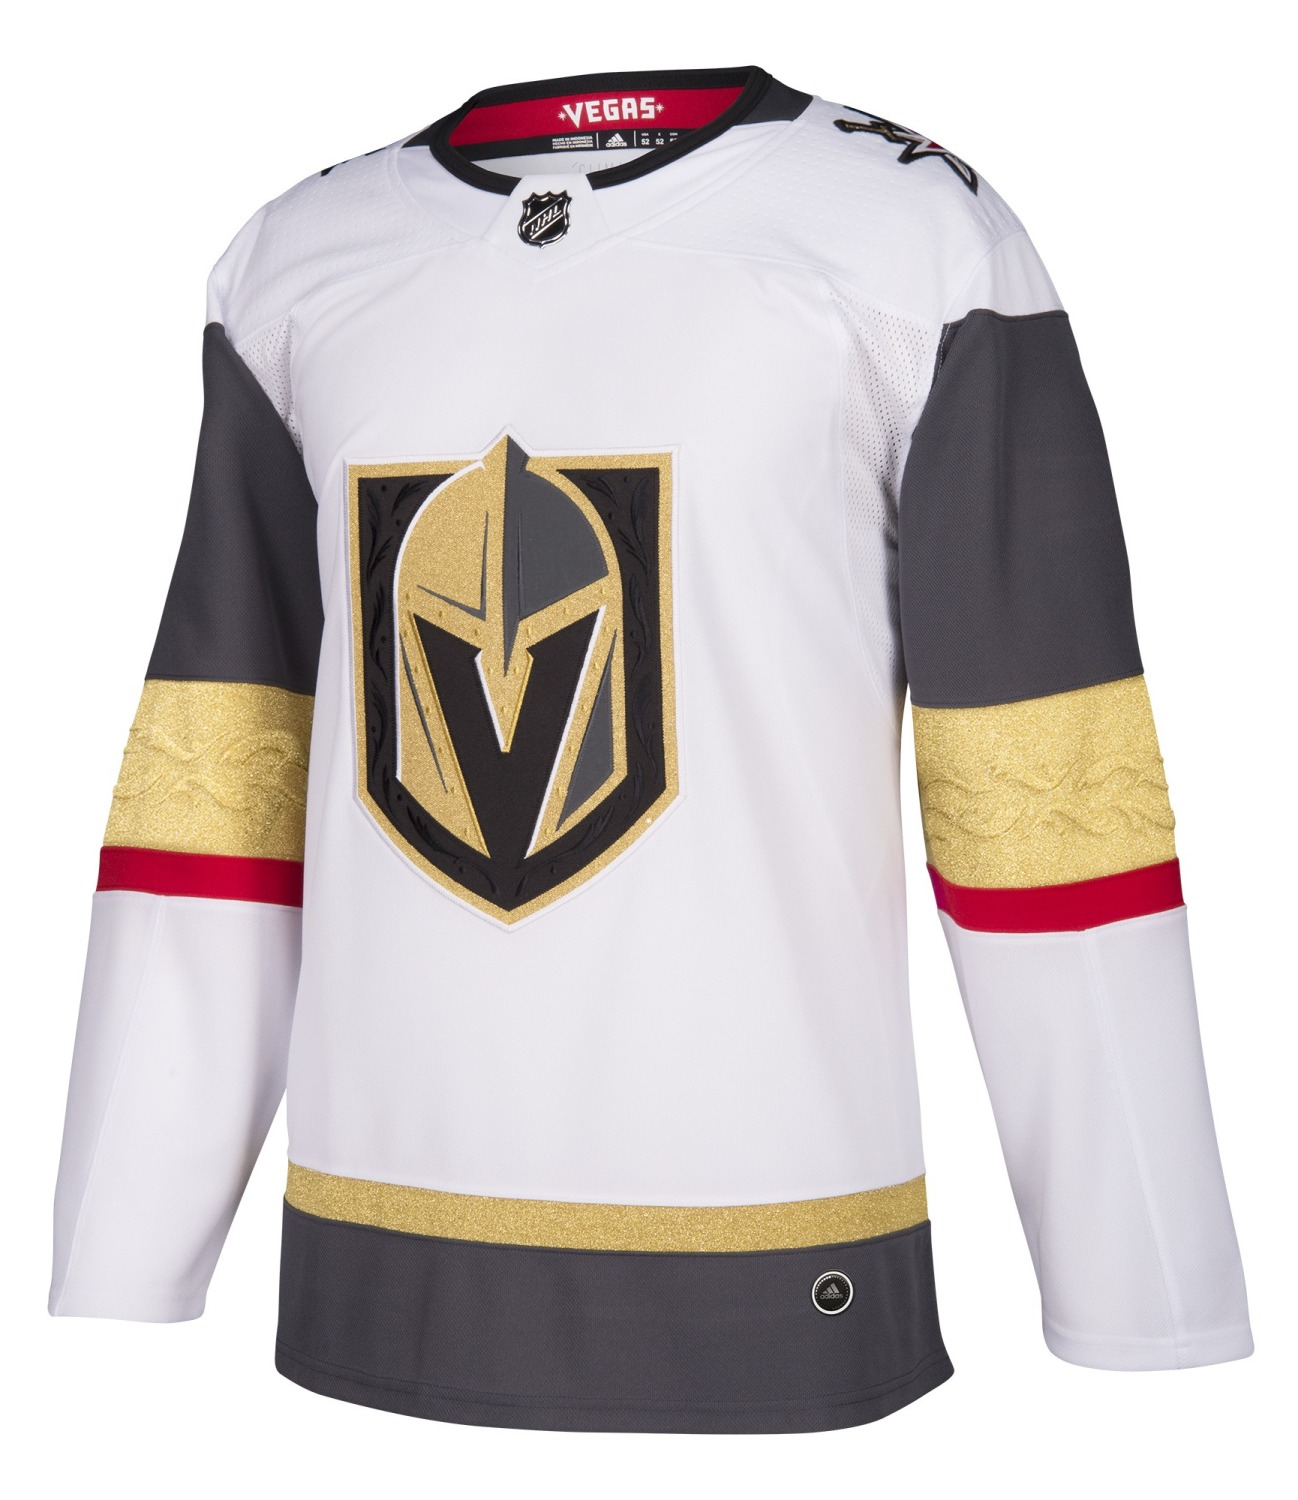 Las Vegas Golden Knights Adidas NHL Men's Climalite Authentic Away Hockey Jersey